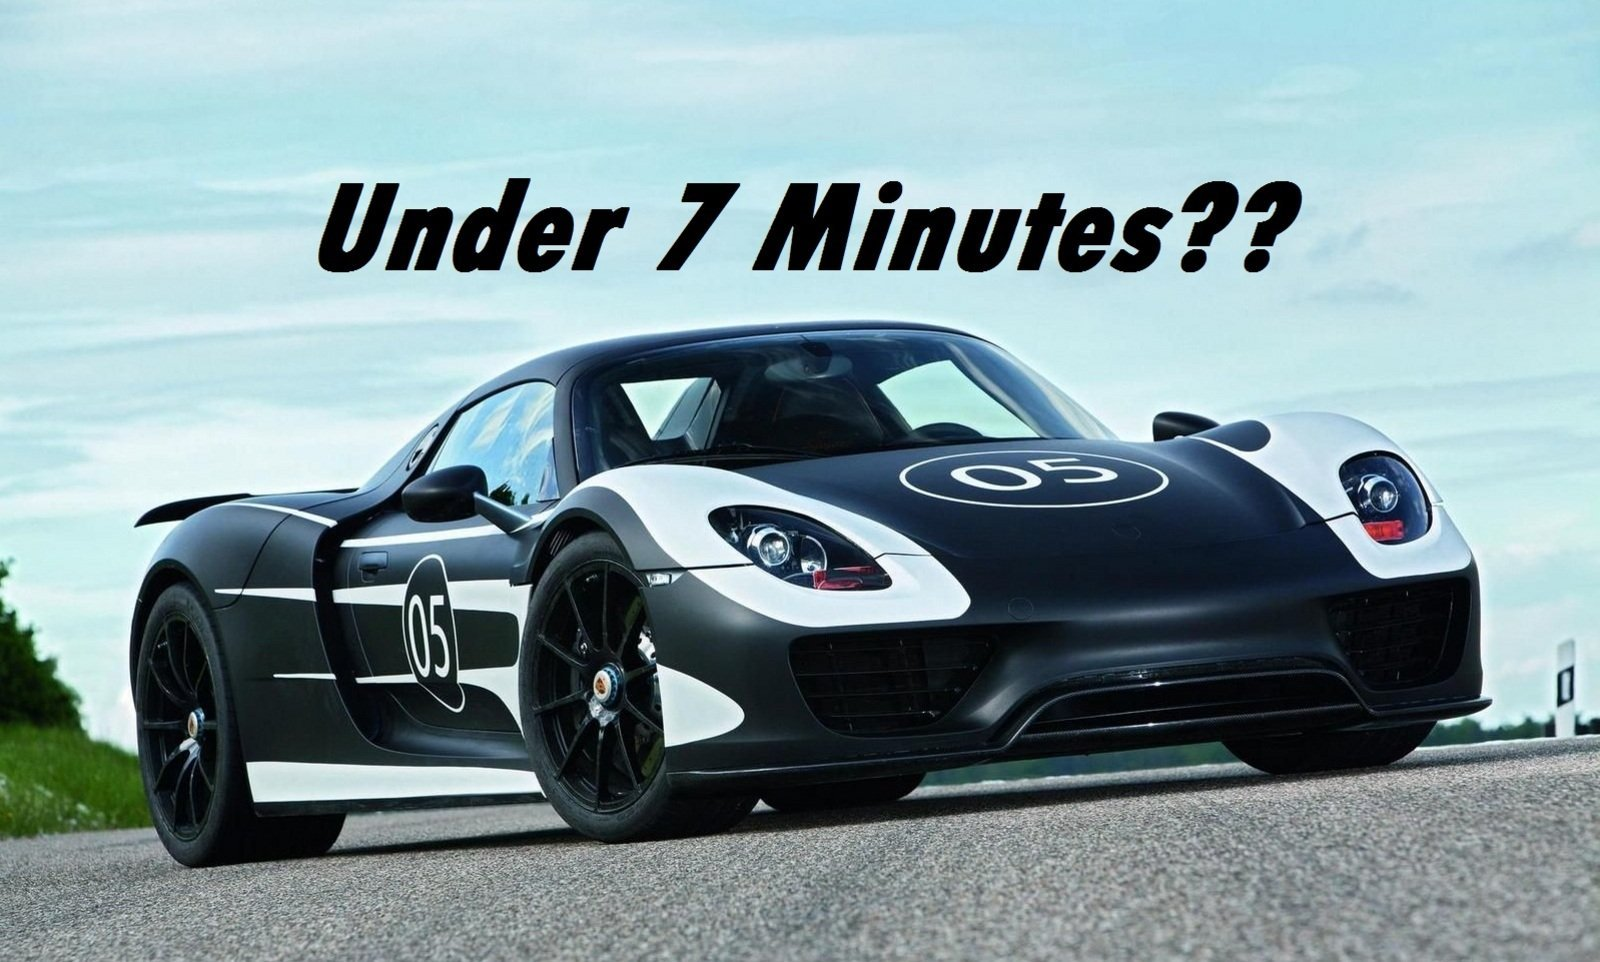 Porsche Shooting For Sub 7 Minute Time Around The